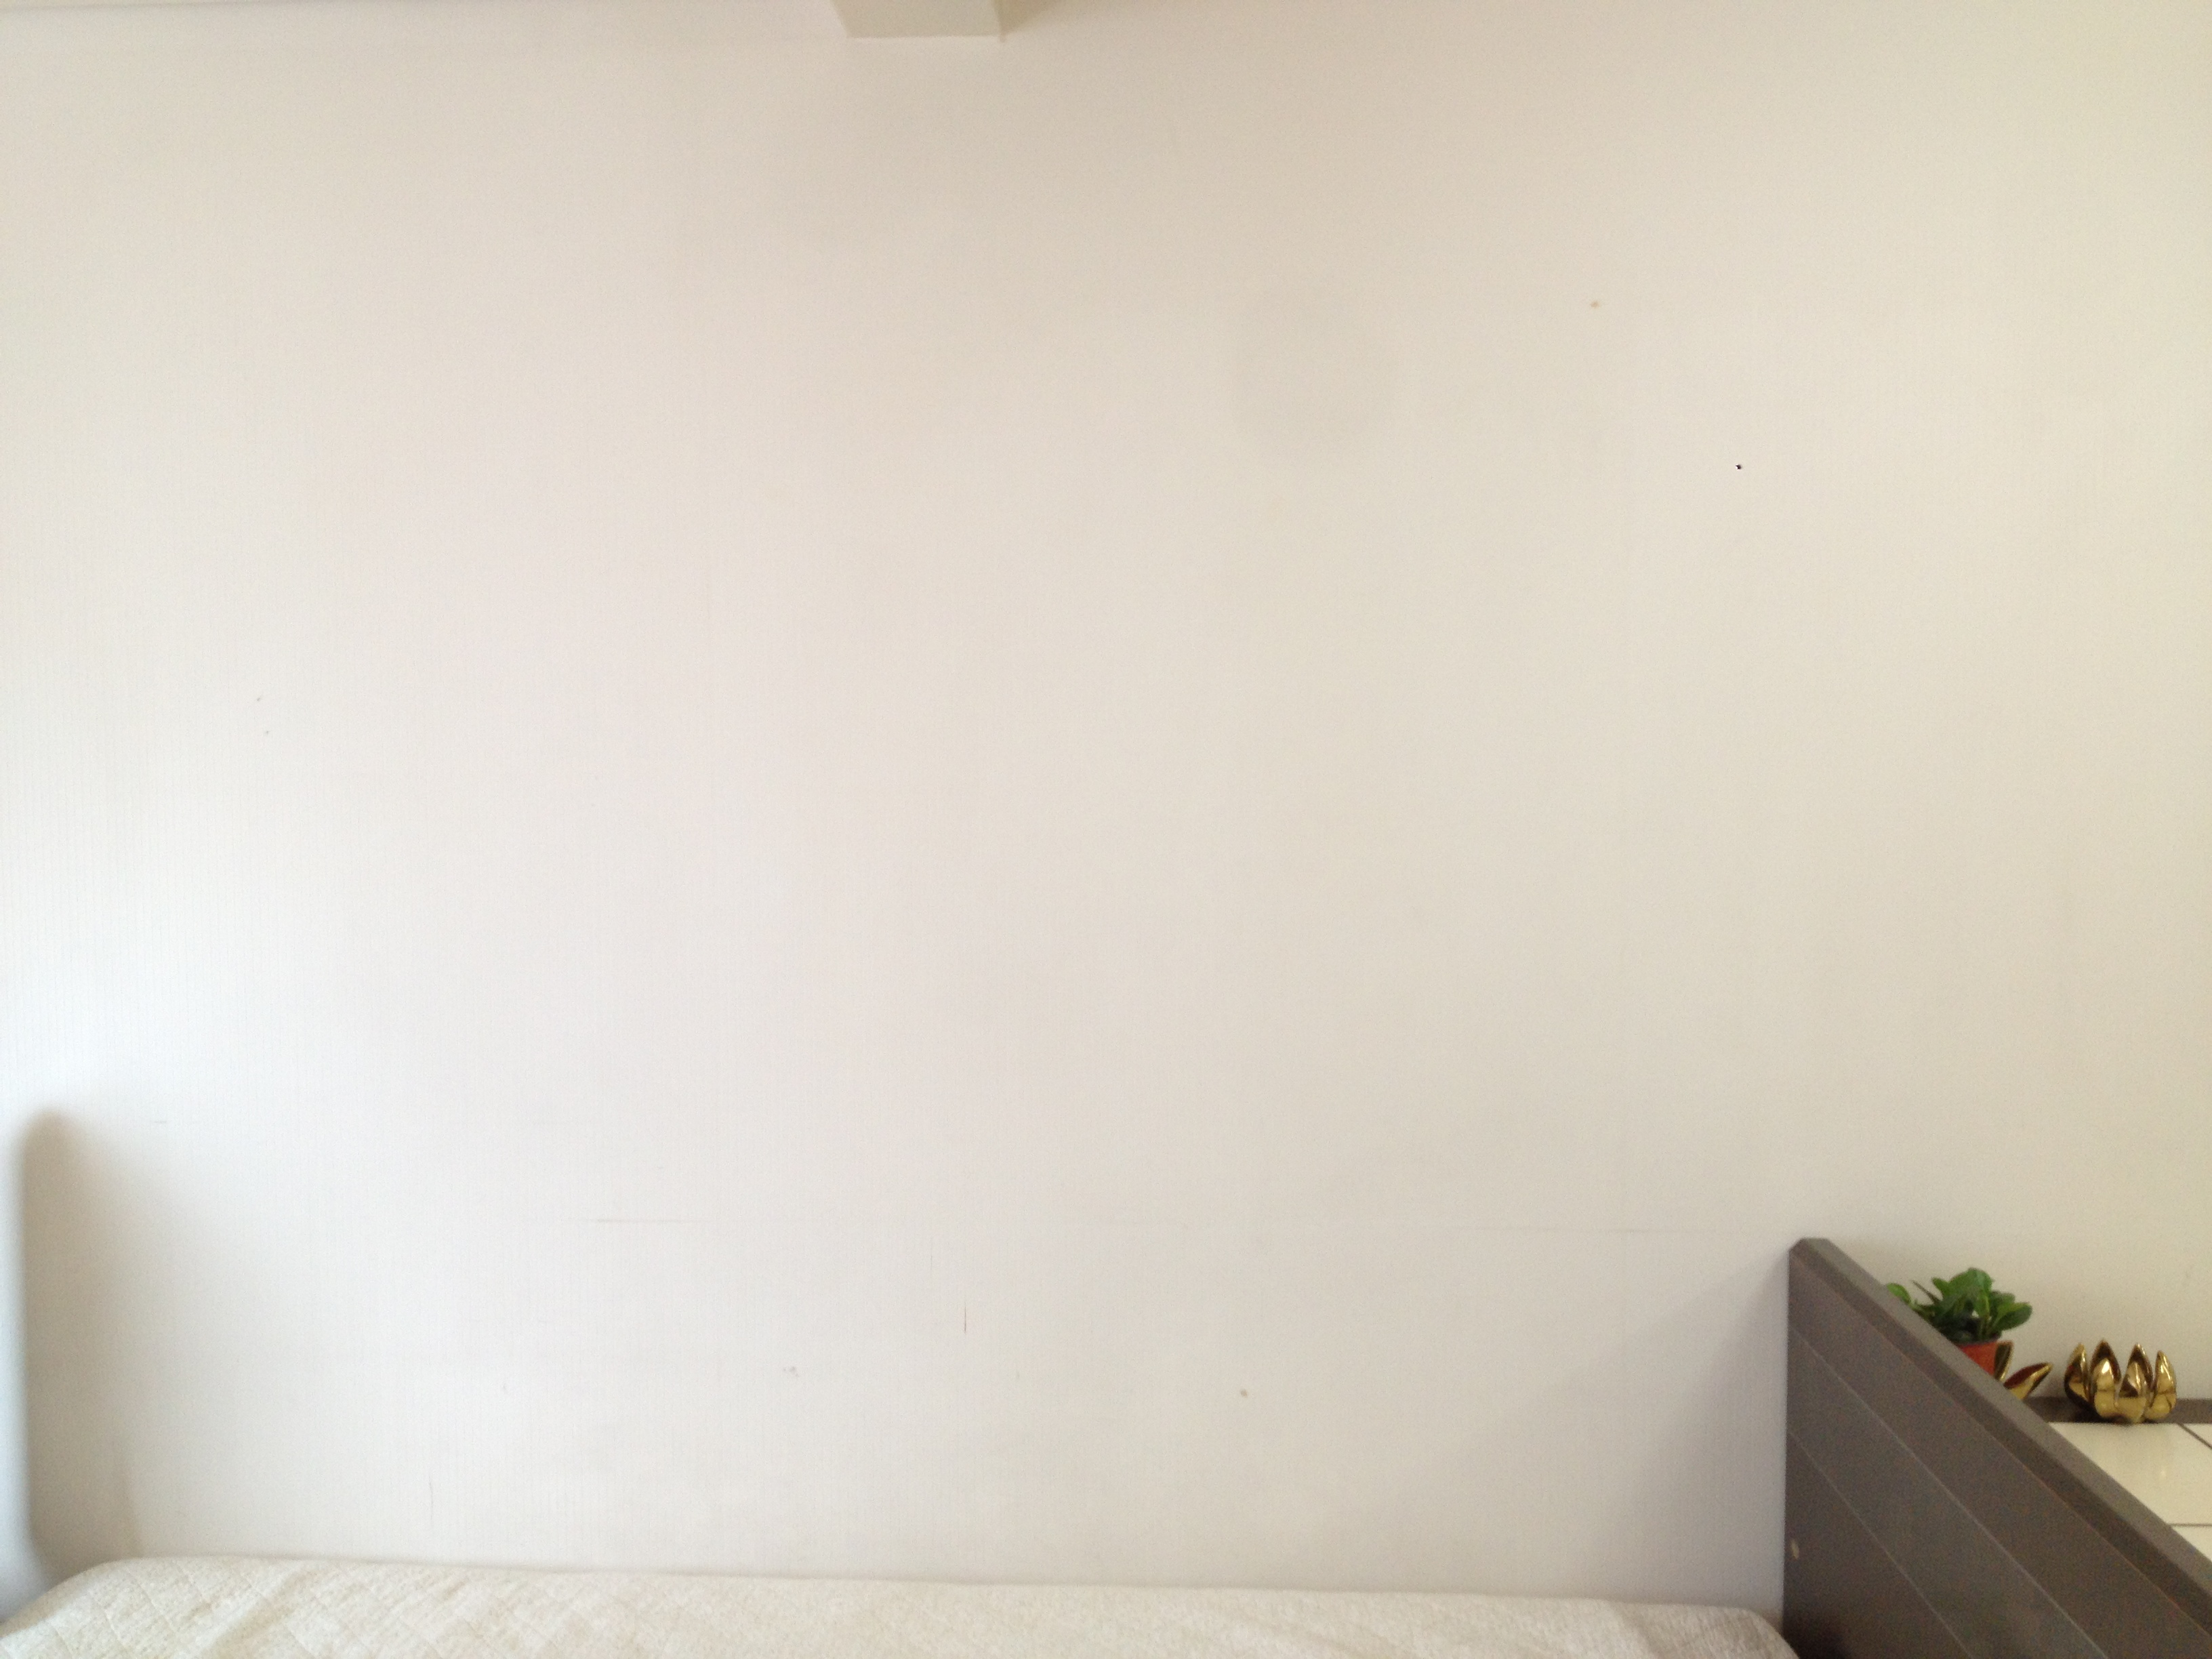 Room with Blank Wall